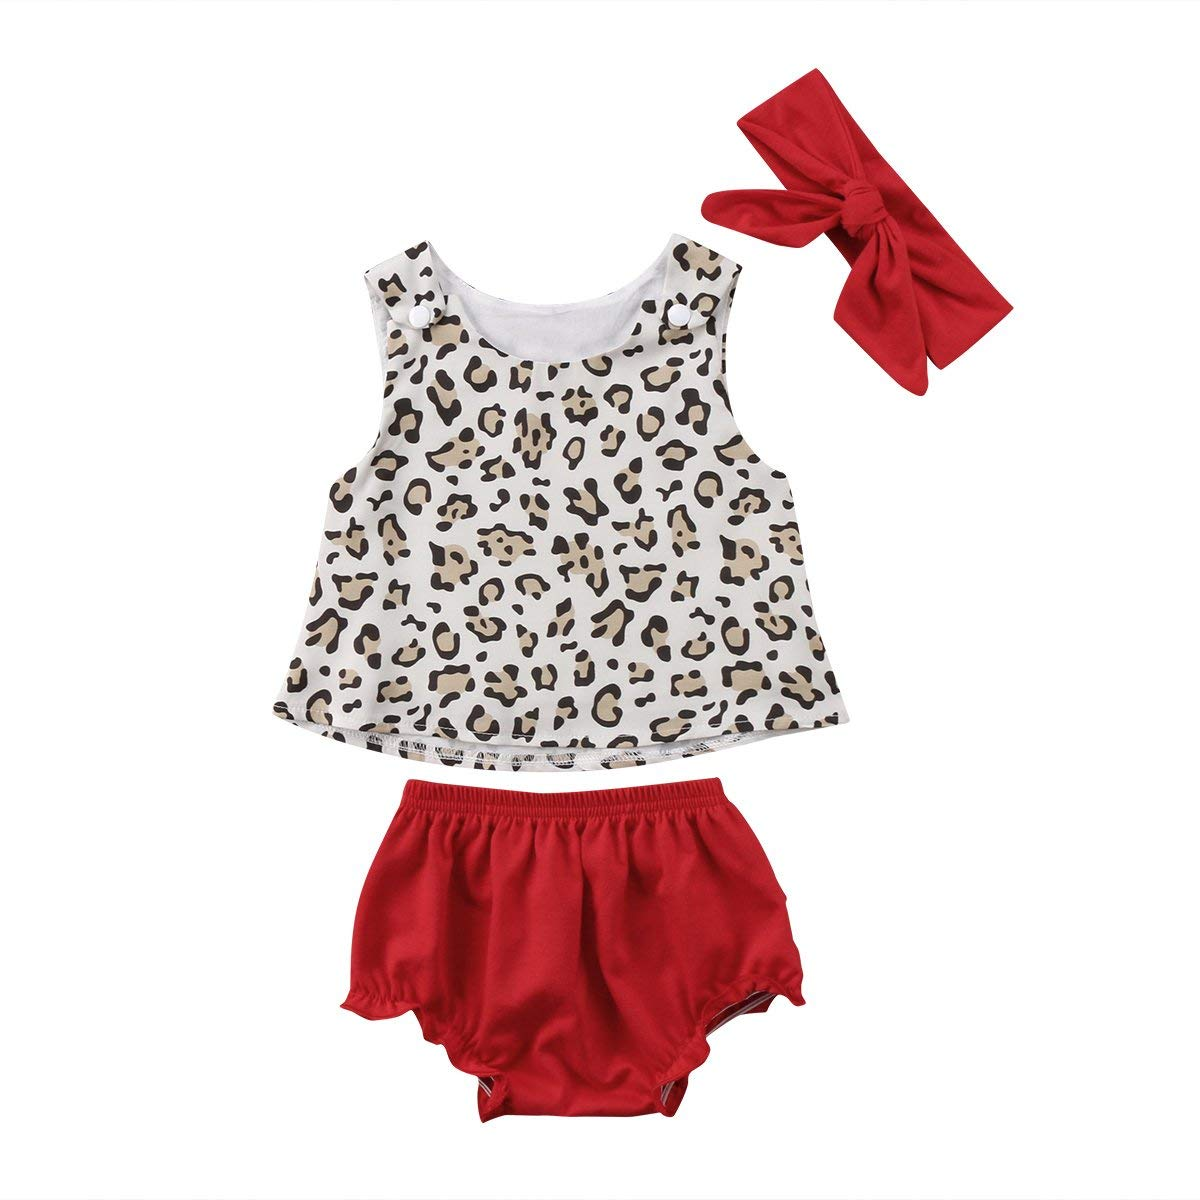 77488d60af29 Get Quotations · ITFABS Newborn Baby Girl Vest Shorts Outfits Leopard  Sleeveless Vest Tops Floral Ruffles Short Outfits with